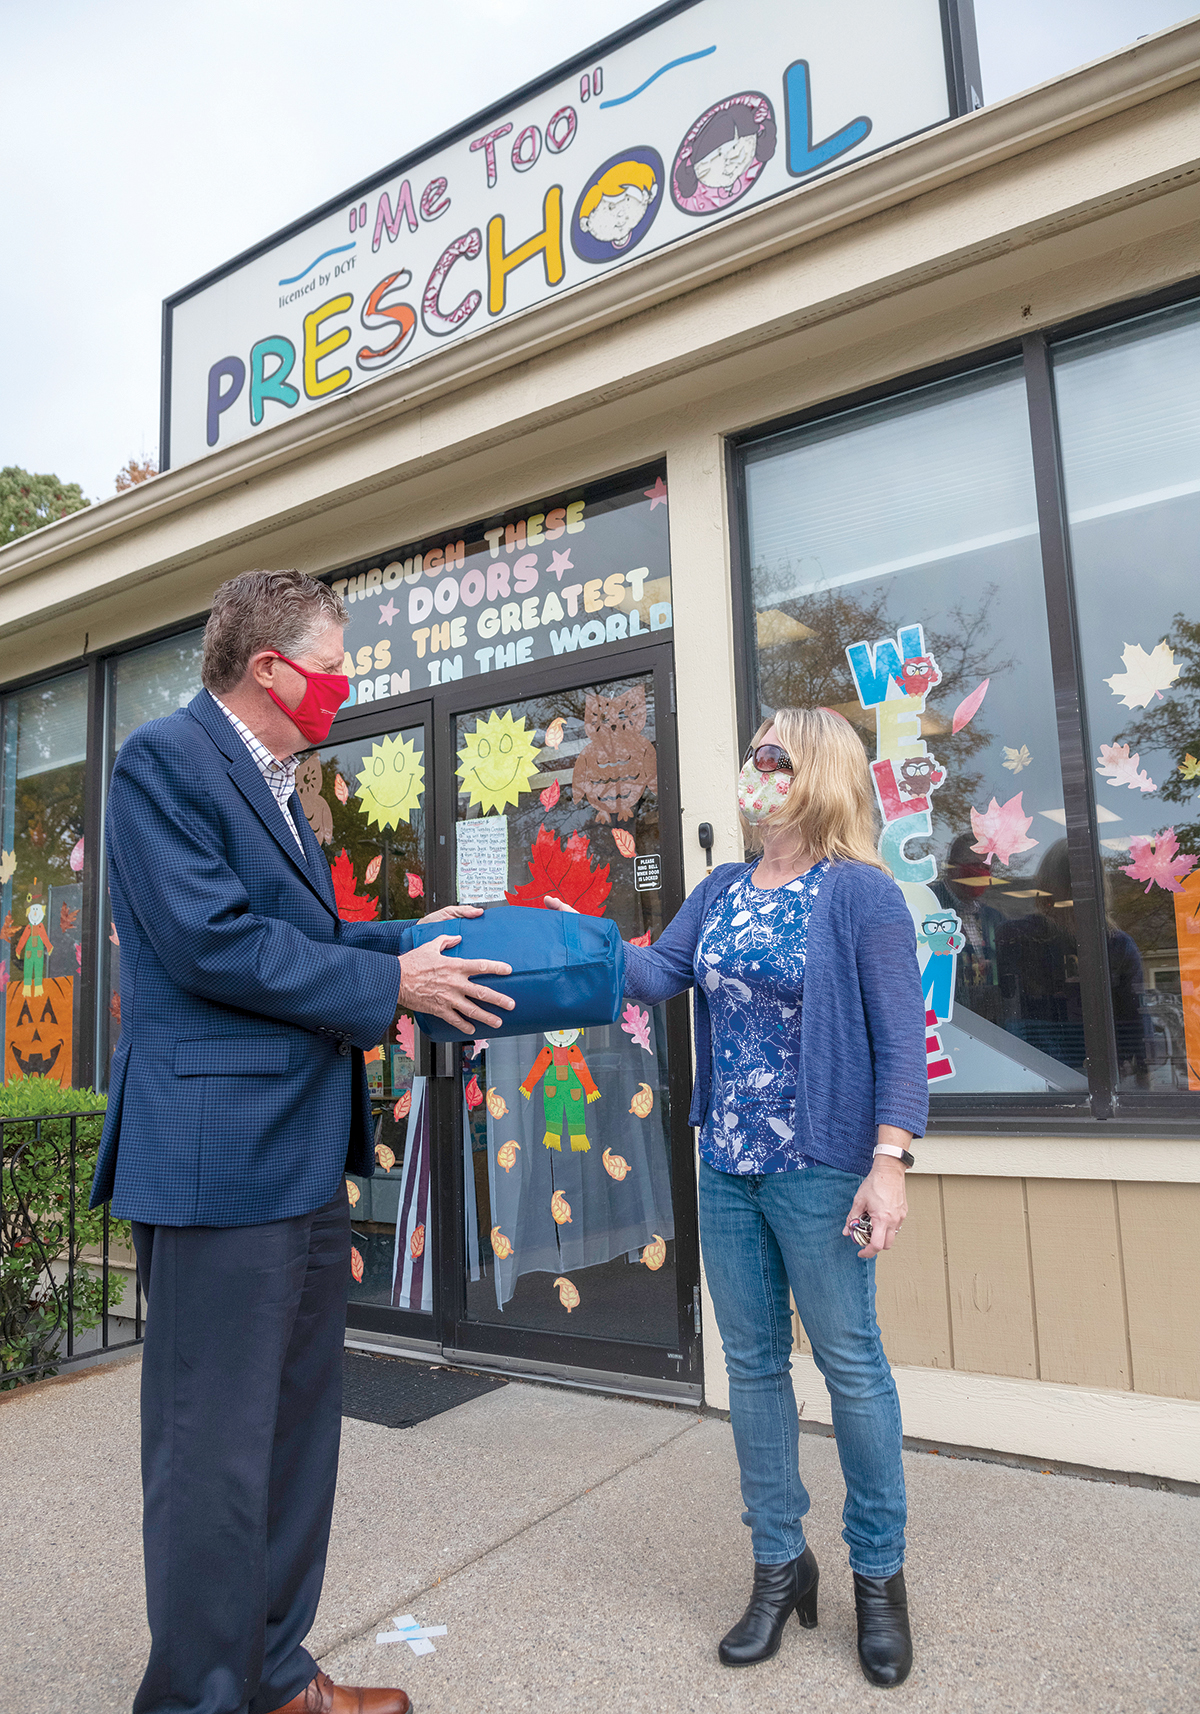 DELIVERY MAN: Lt. Gov. Daniel J. McKee meets with Kim Fortier, co-owner of Me Too Preschool in Woonsocket, as part of his effort to get businesses to apply for the Restore RI grant programs. He is also delivering face masks. / PBN PHOTO/MICHAEL SALERNO